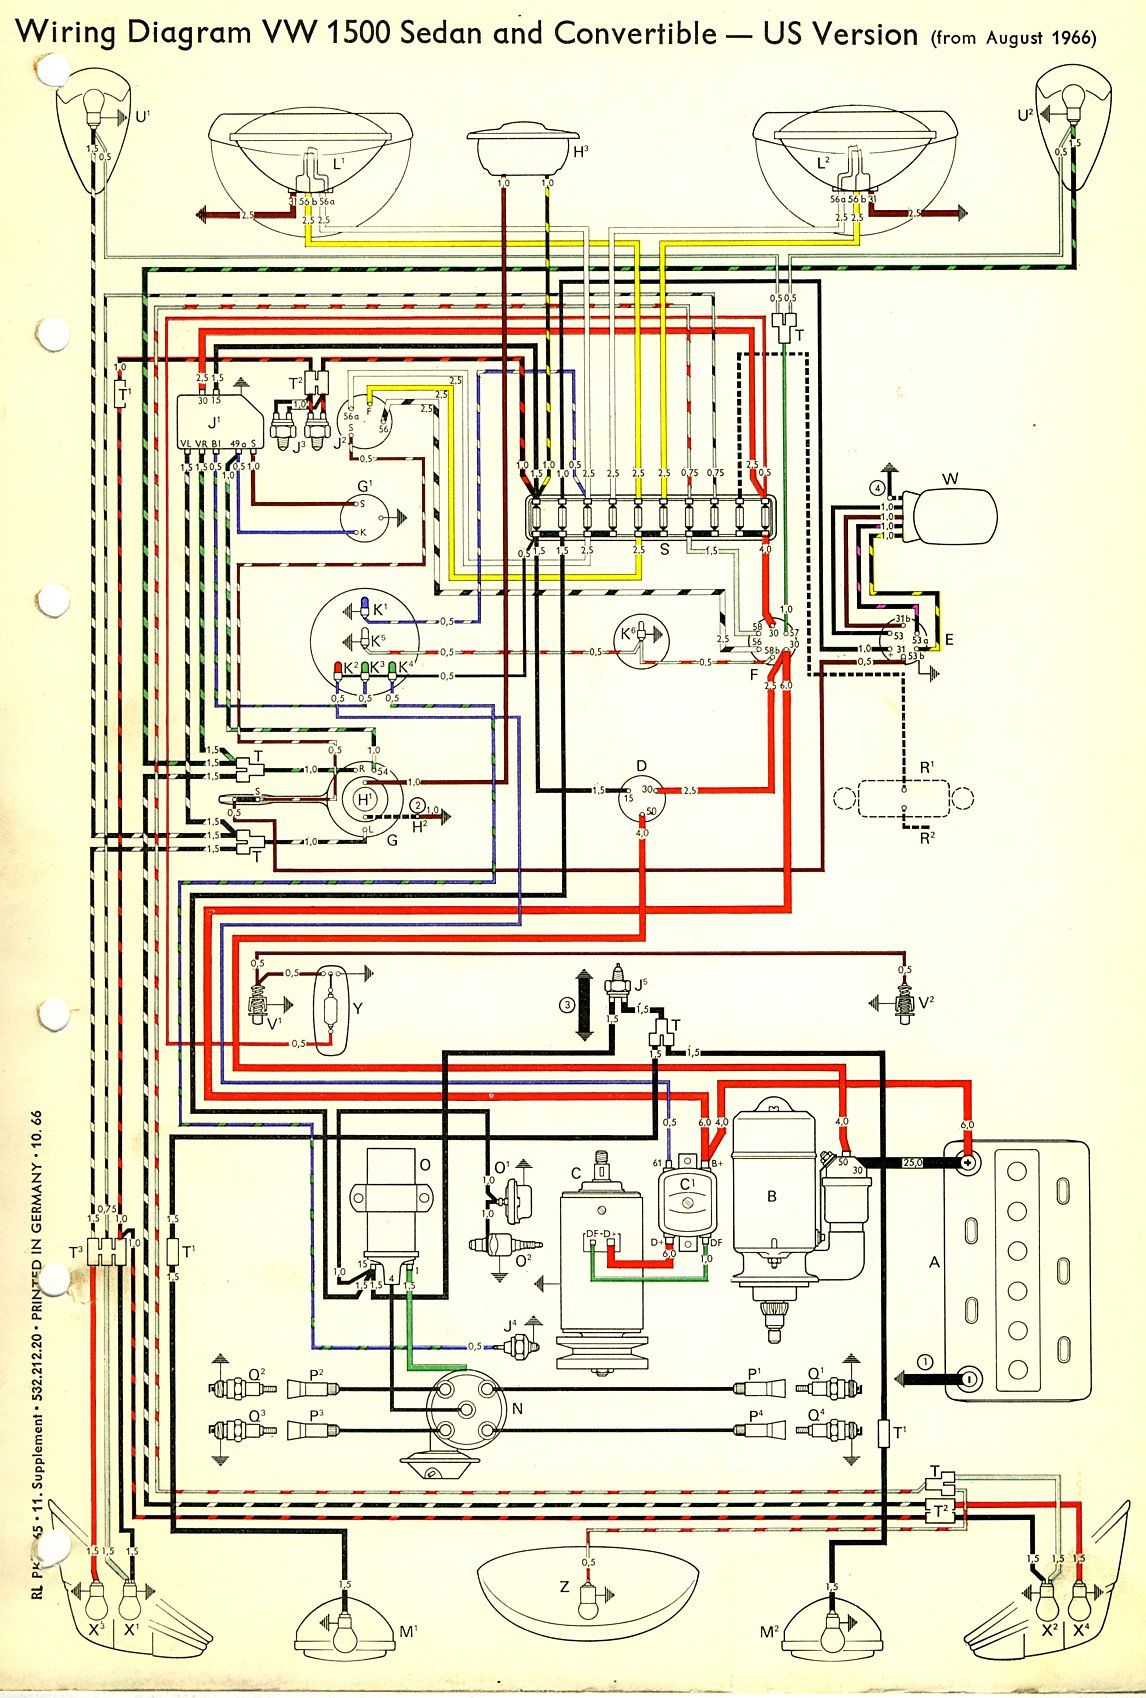 1967 Vw Wiring Diagram With Alternator Third Level On For Motorola Bug